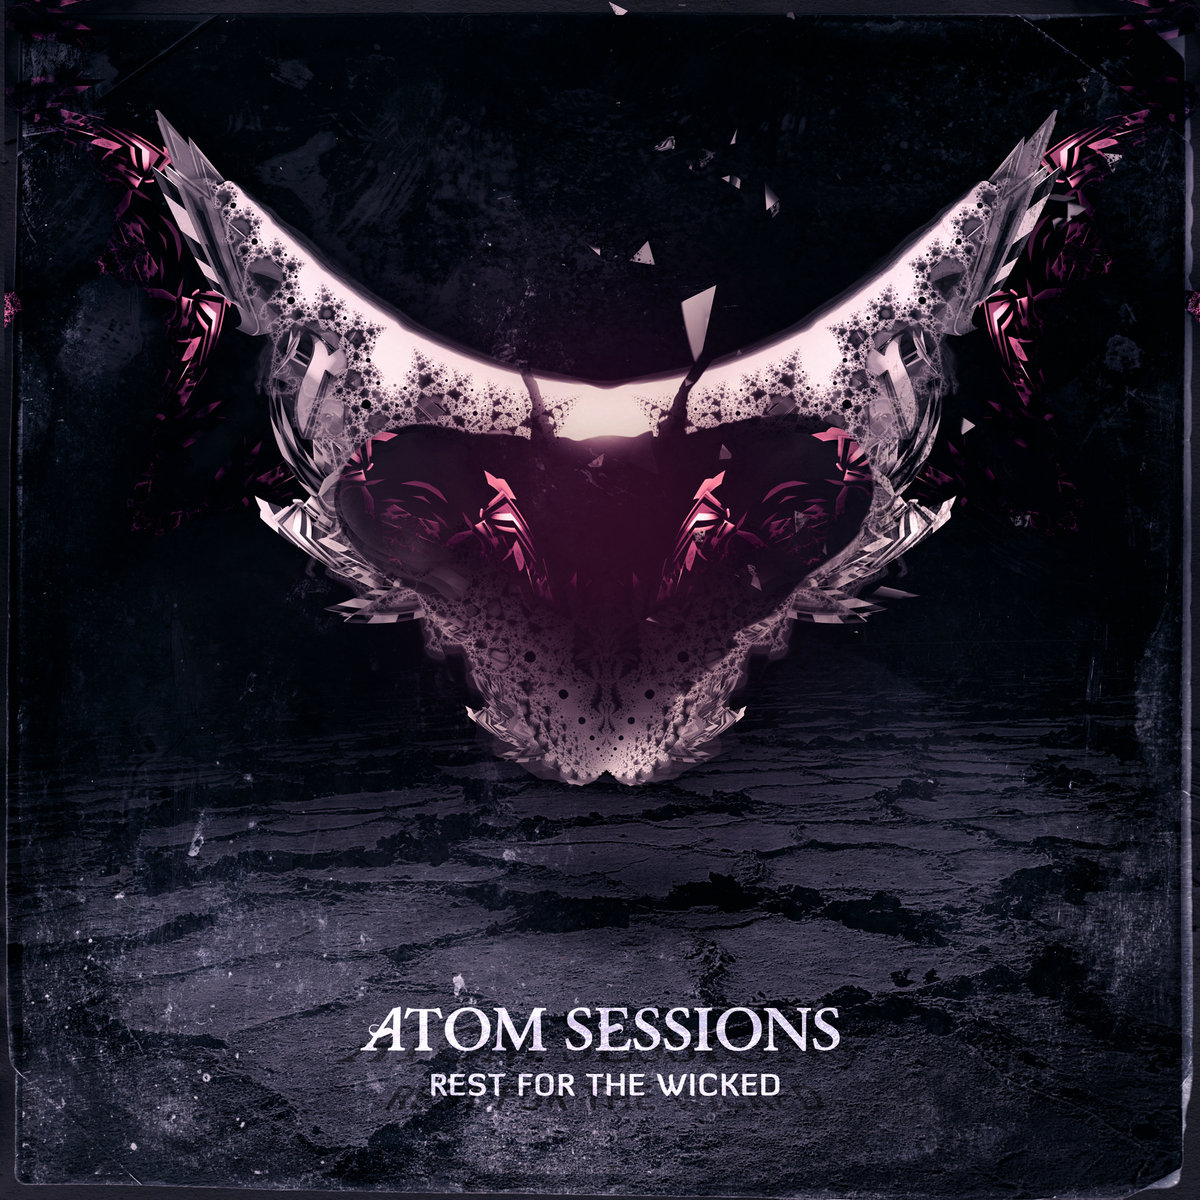 Atom Sessions - Rest For The Wicked @ 'Rest For The Wicked' album (bass, electronic)